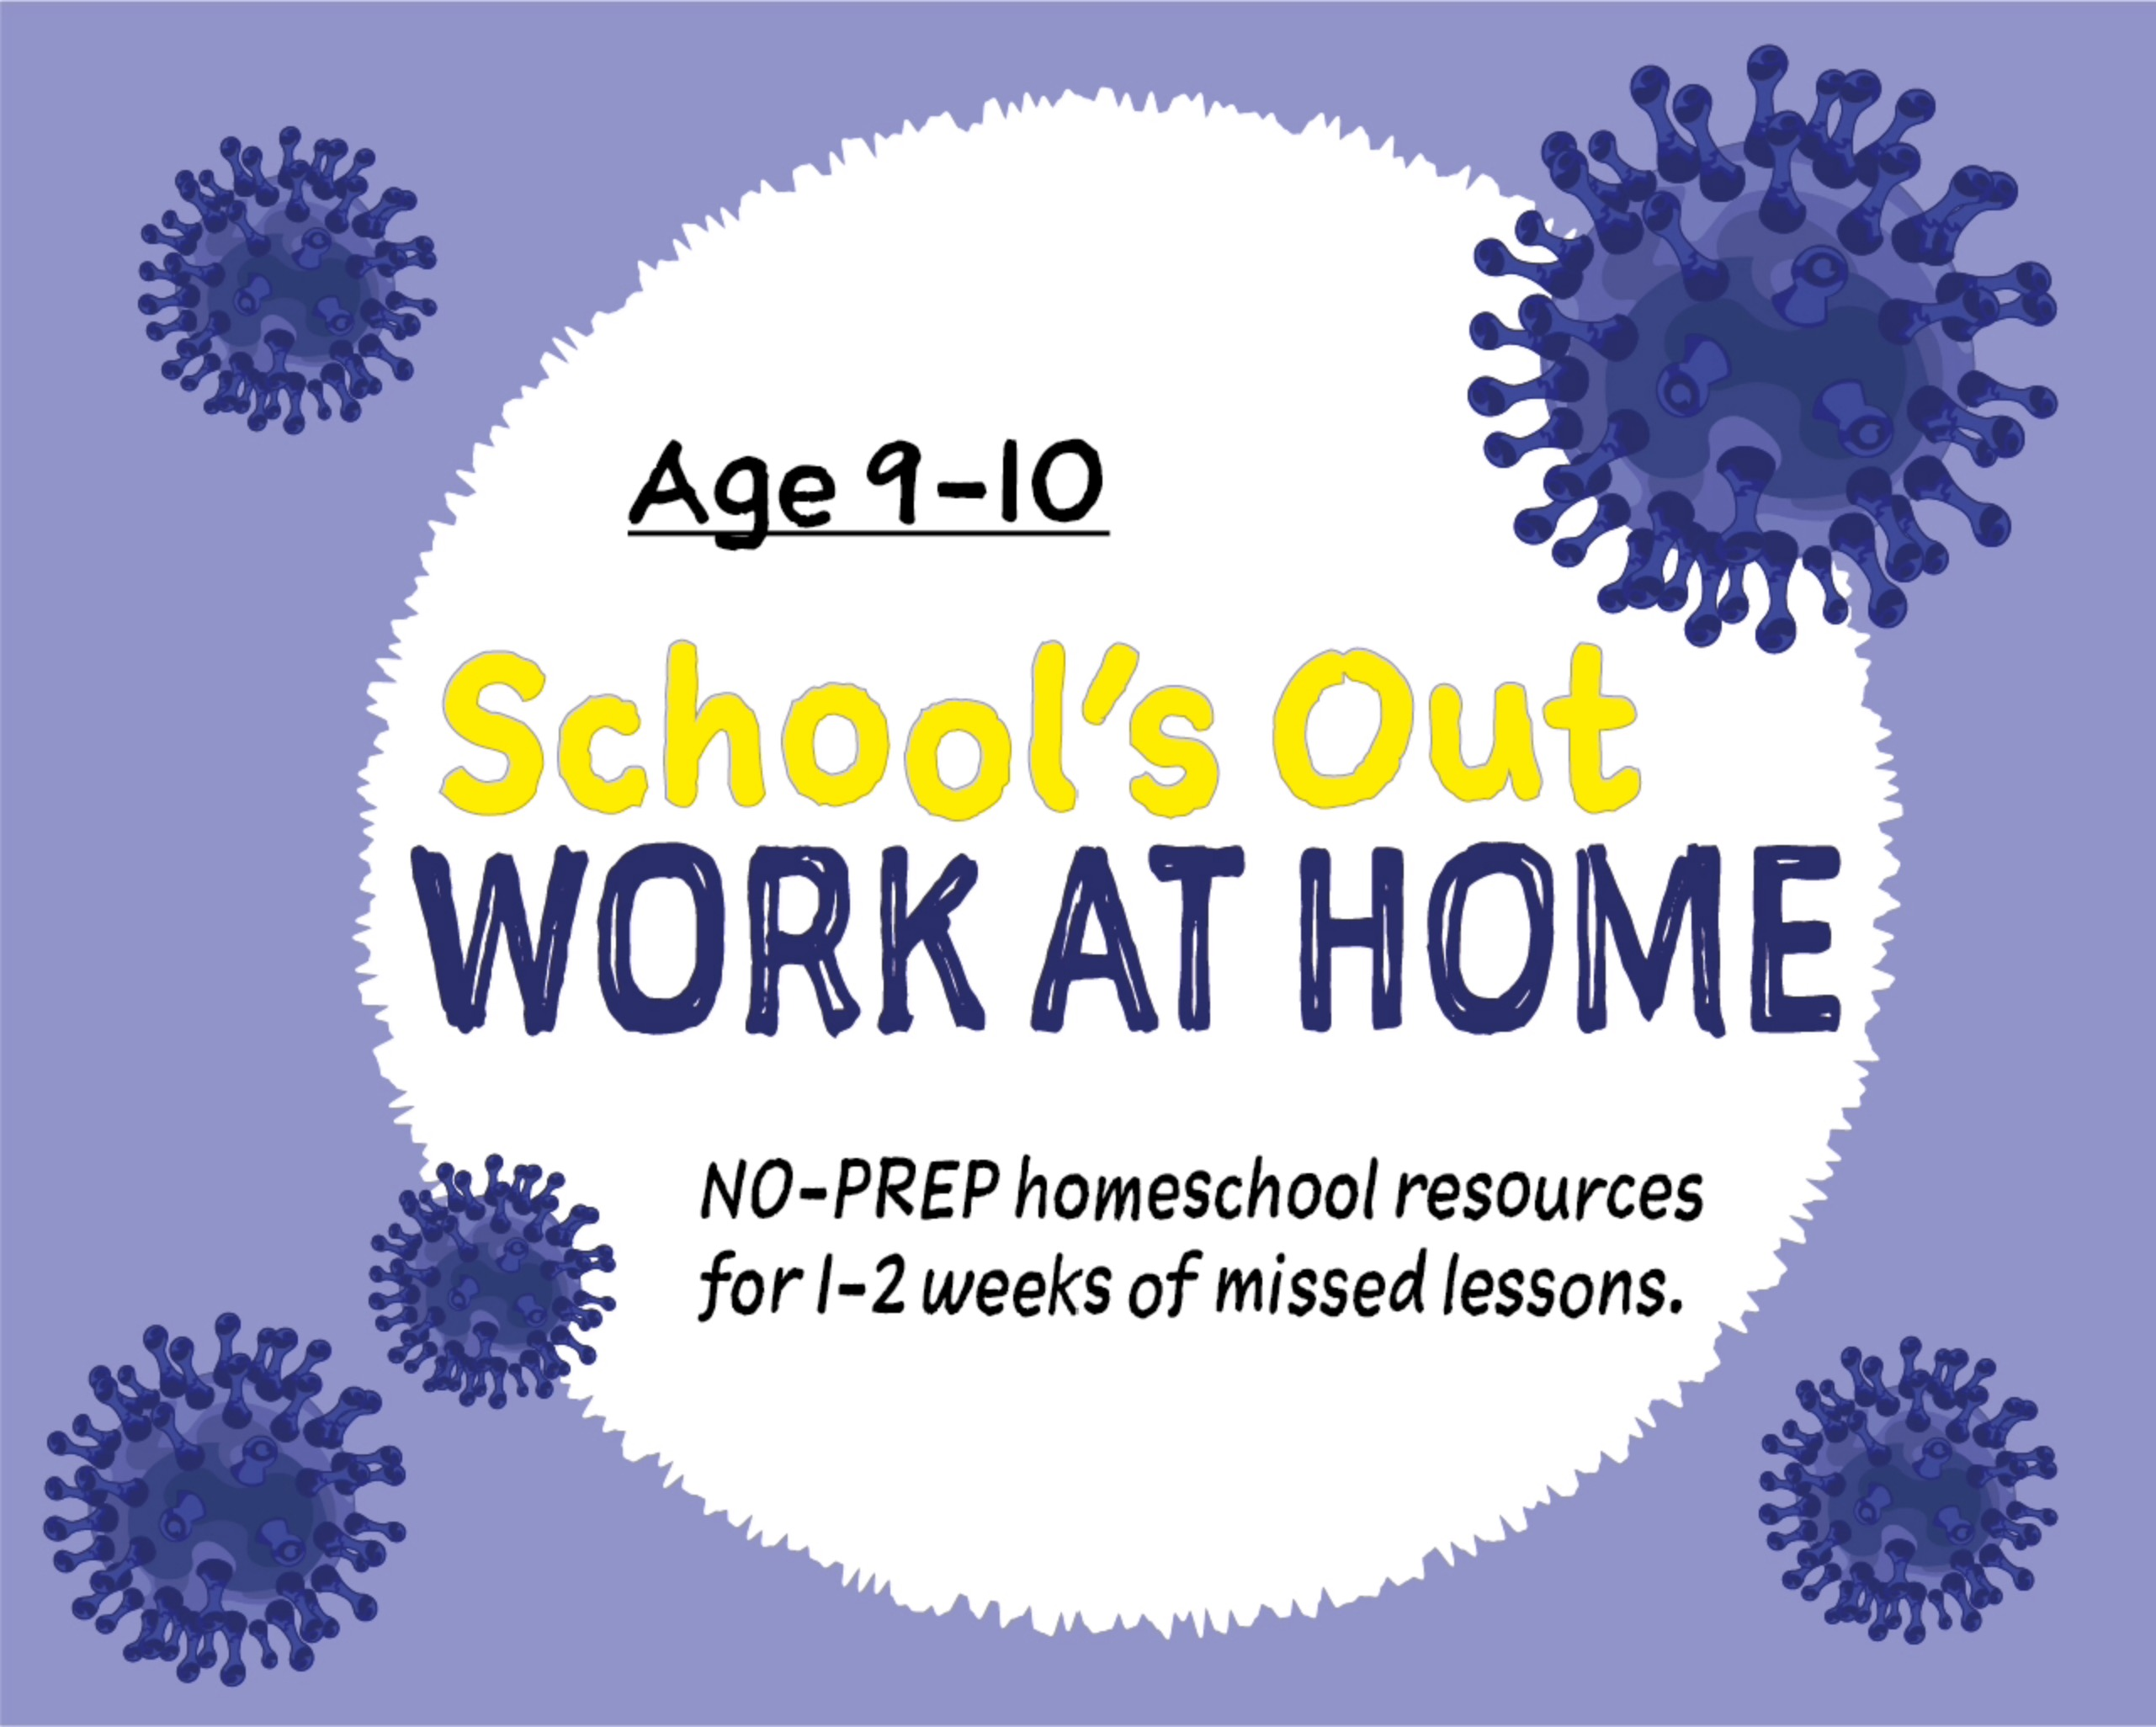 Schools Out For Coronavirus! Prepare For Schooling At Home (age 9-10 years) (year 5) (grade 4)